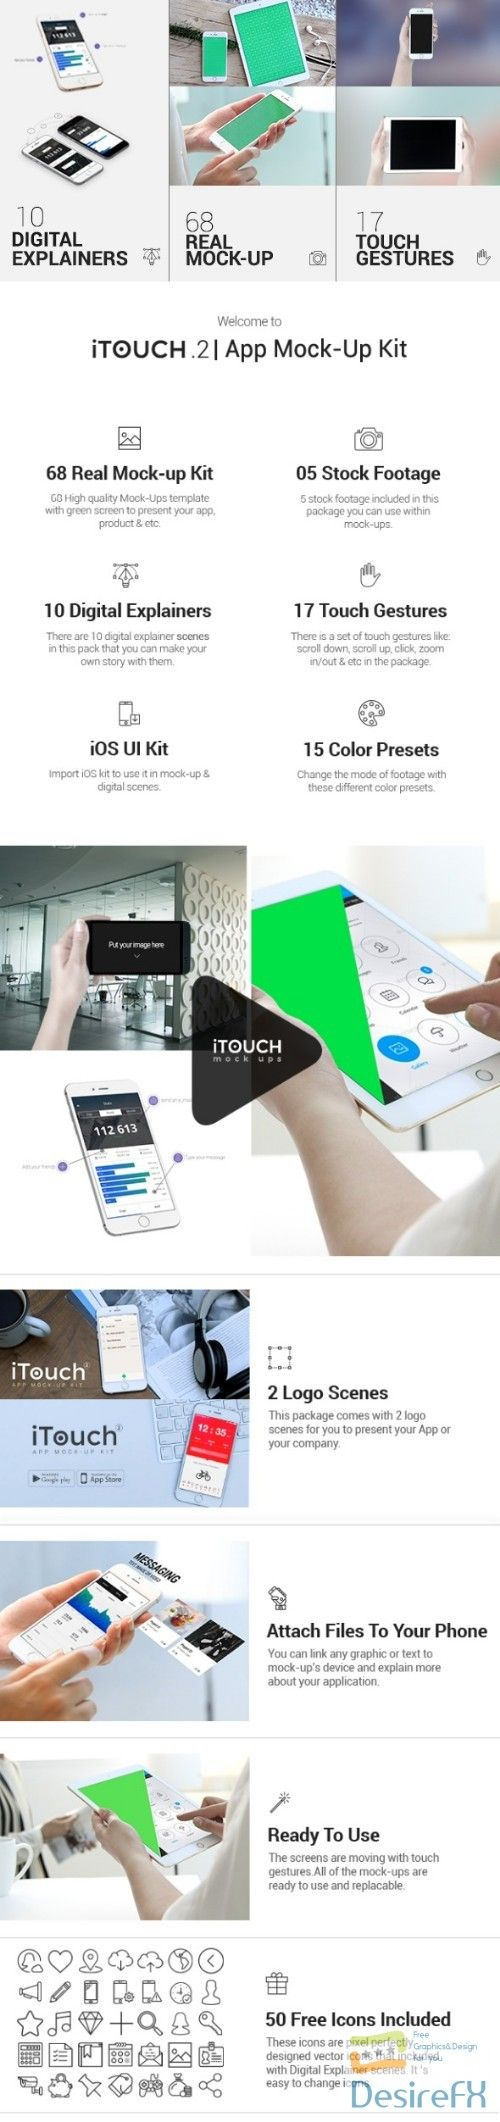 Videohive iTouch 2 App Promo MockUp Kit 11589383